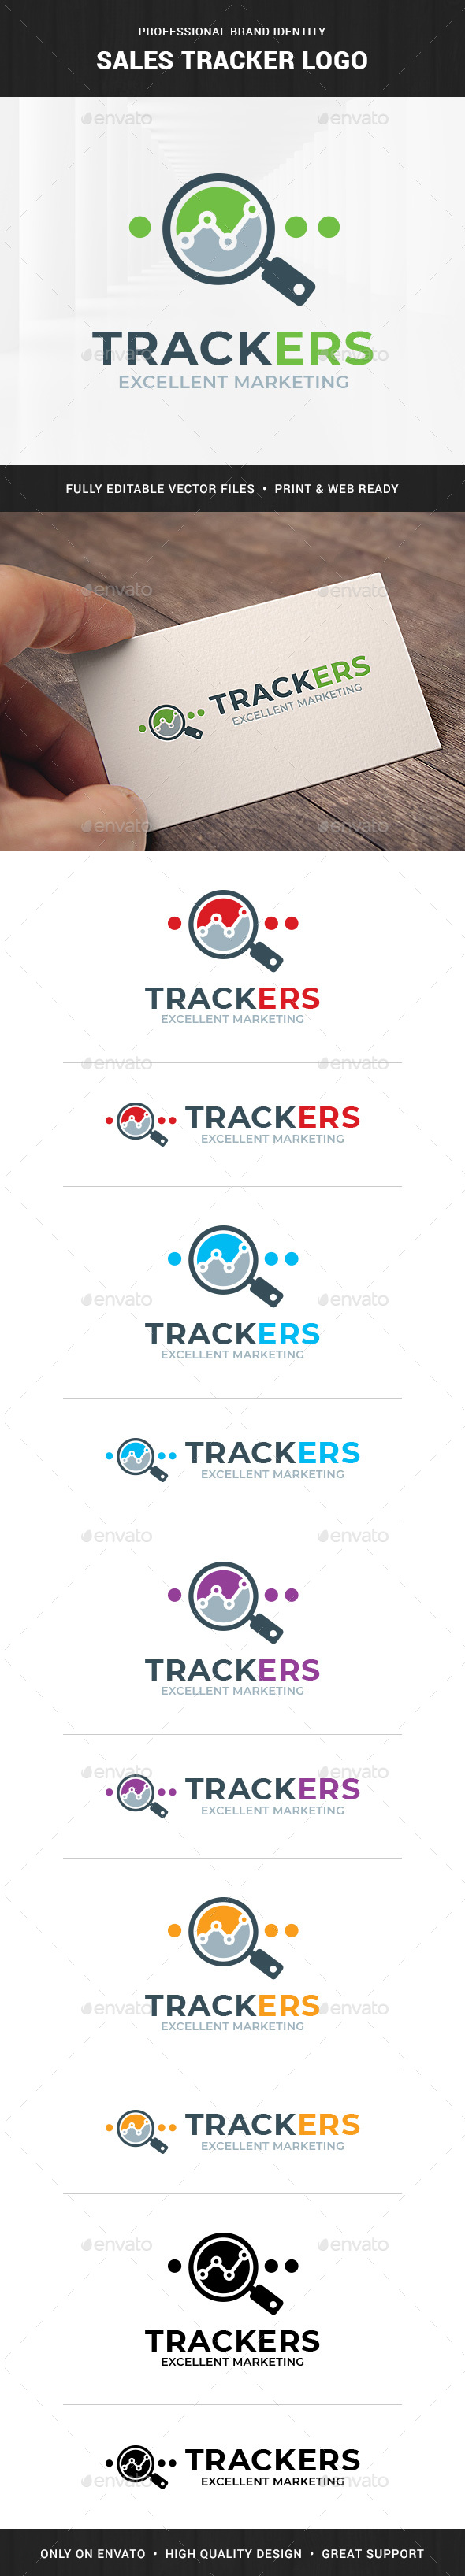 Sales Tracker Logo Template - Objects Logo Templates